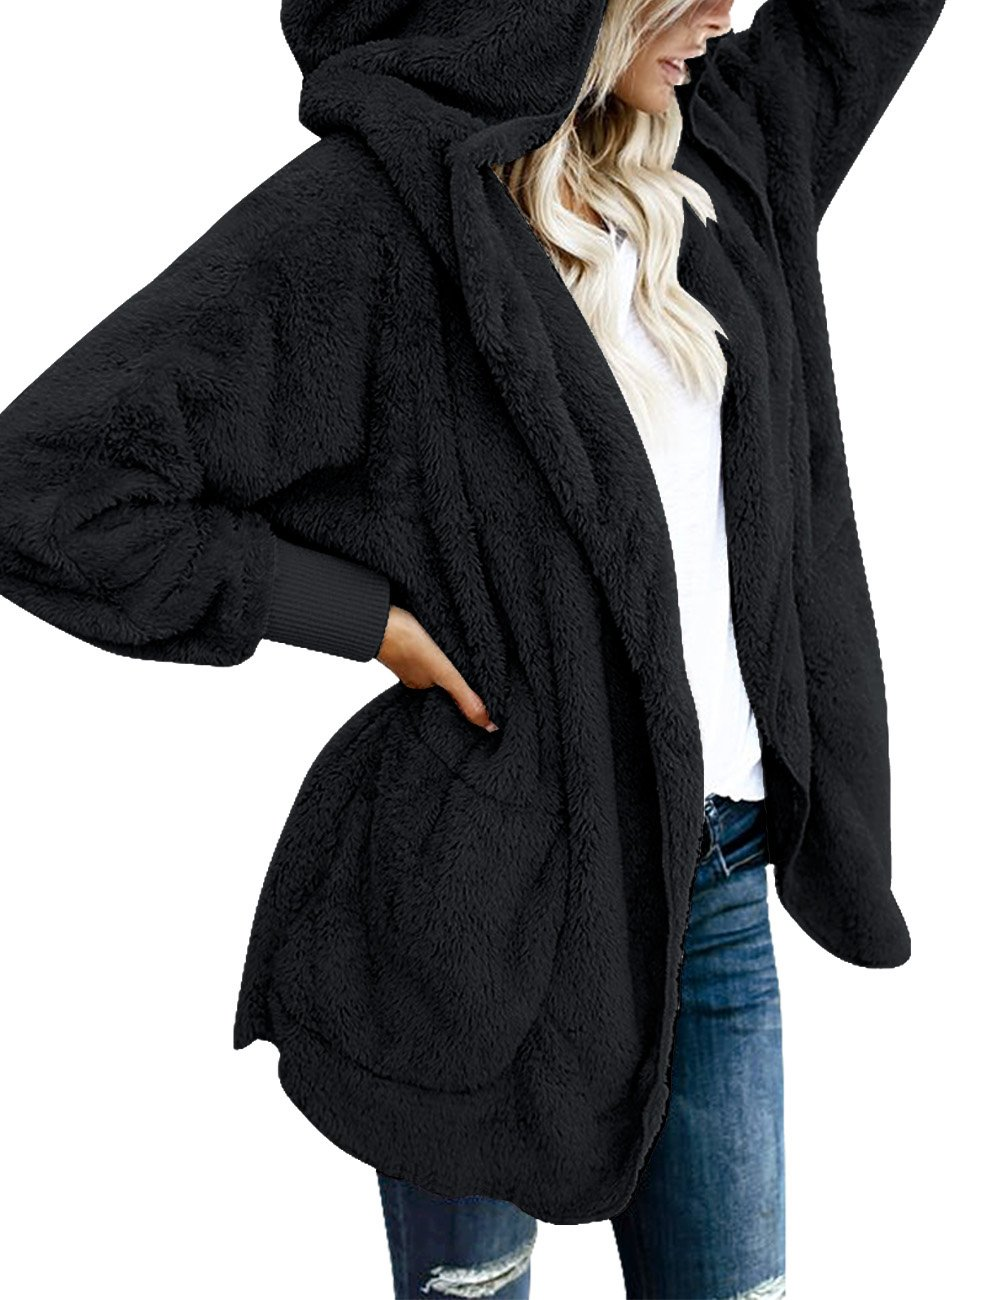 ACKKIA Women's Casual Draped Open Front Oversized Pockets Hooded Coat Cardigan Black Size XX-Large (US 20-22)